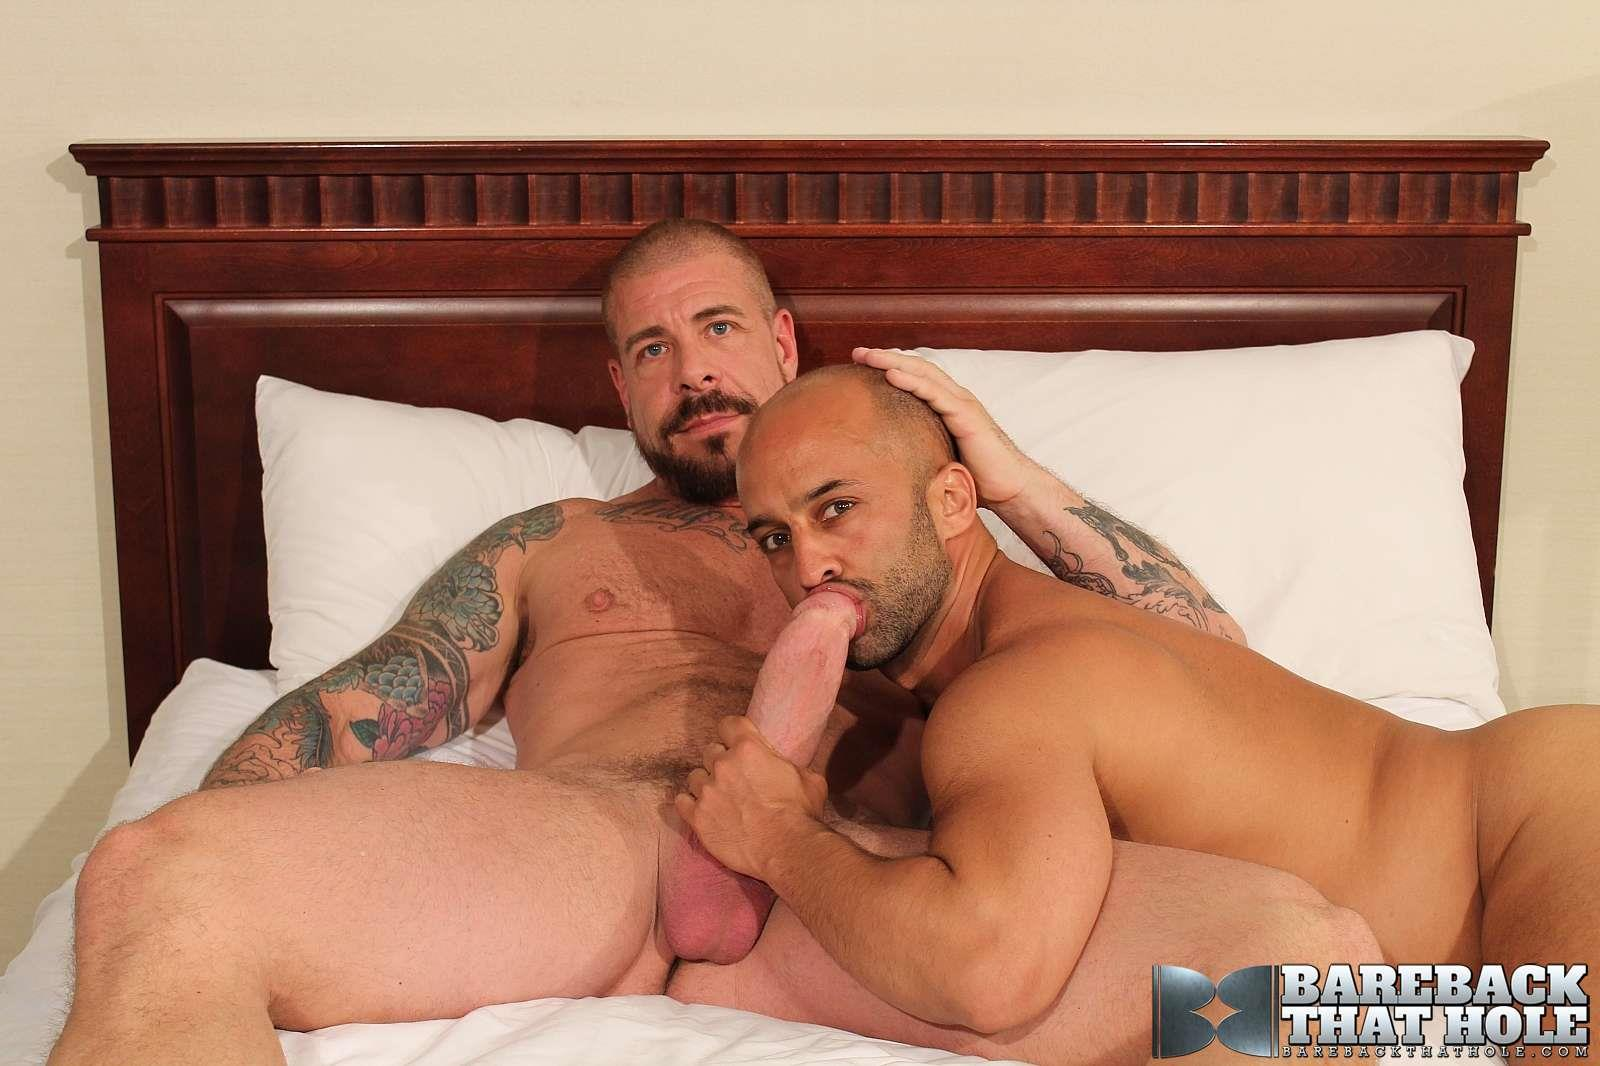 Gay man huge penis cumming boy and latino